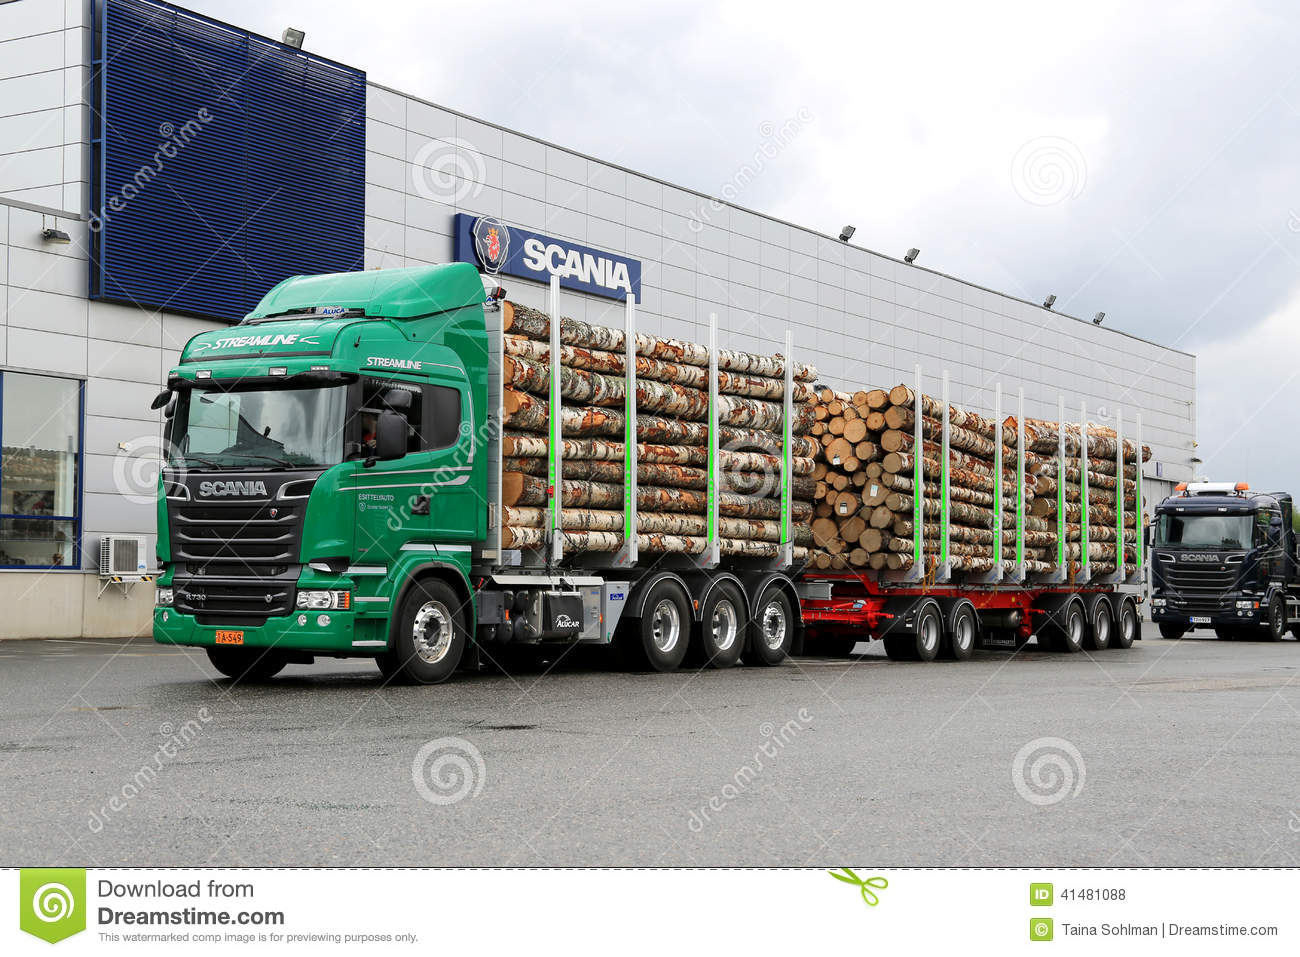 Scania r euro v timber truck editorial image